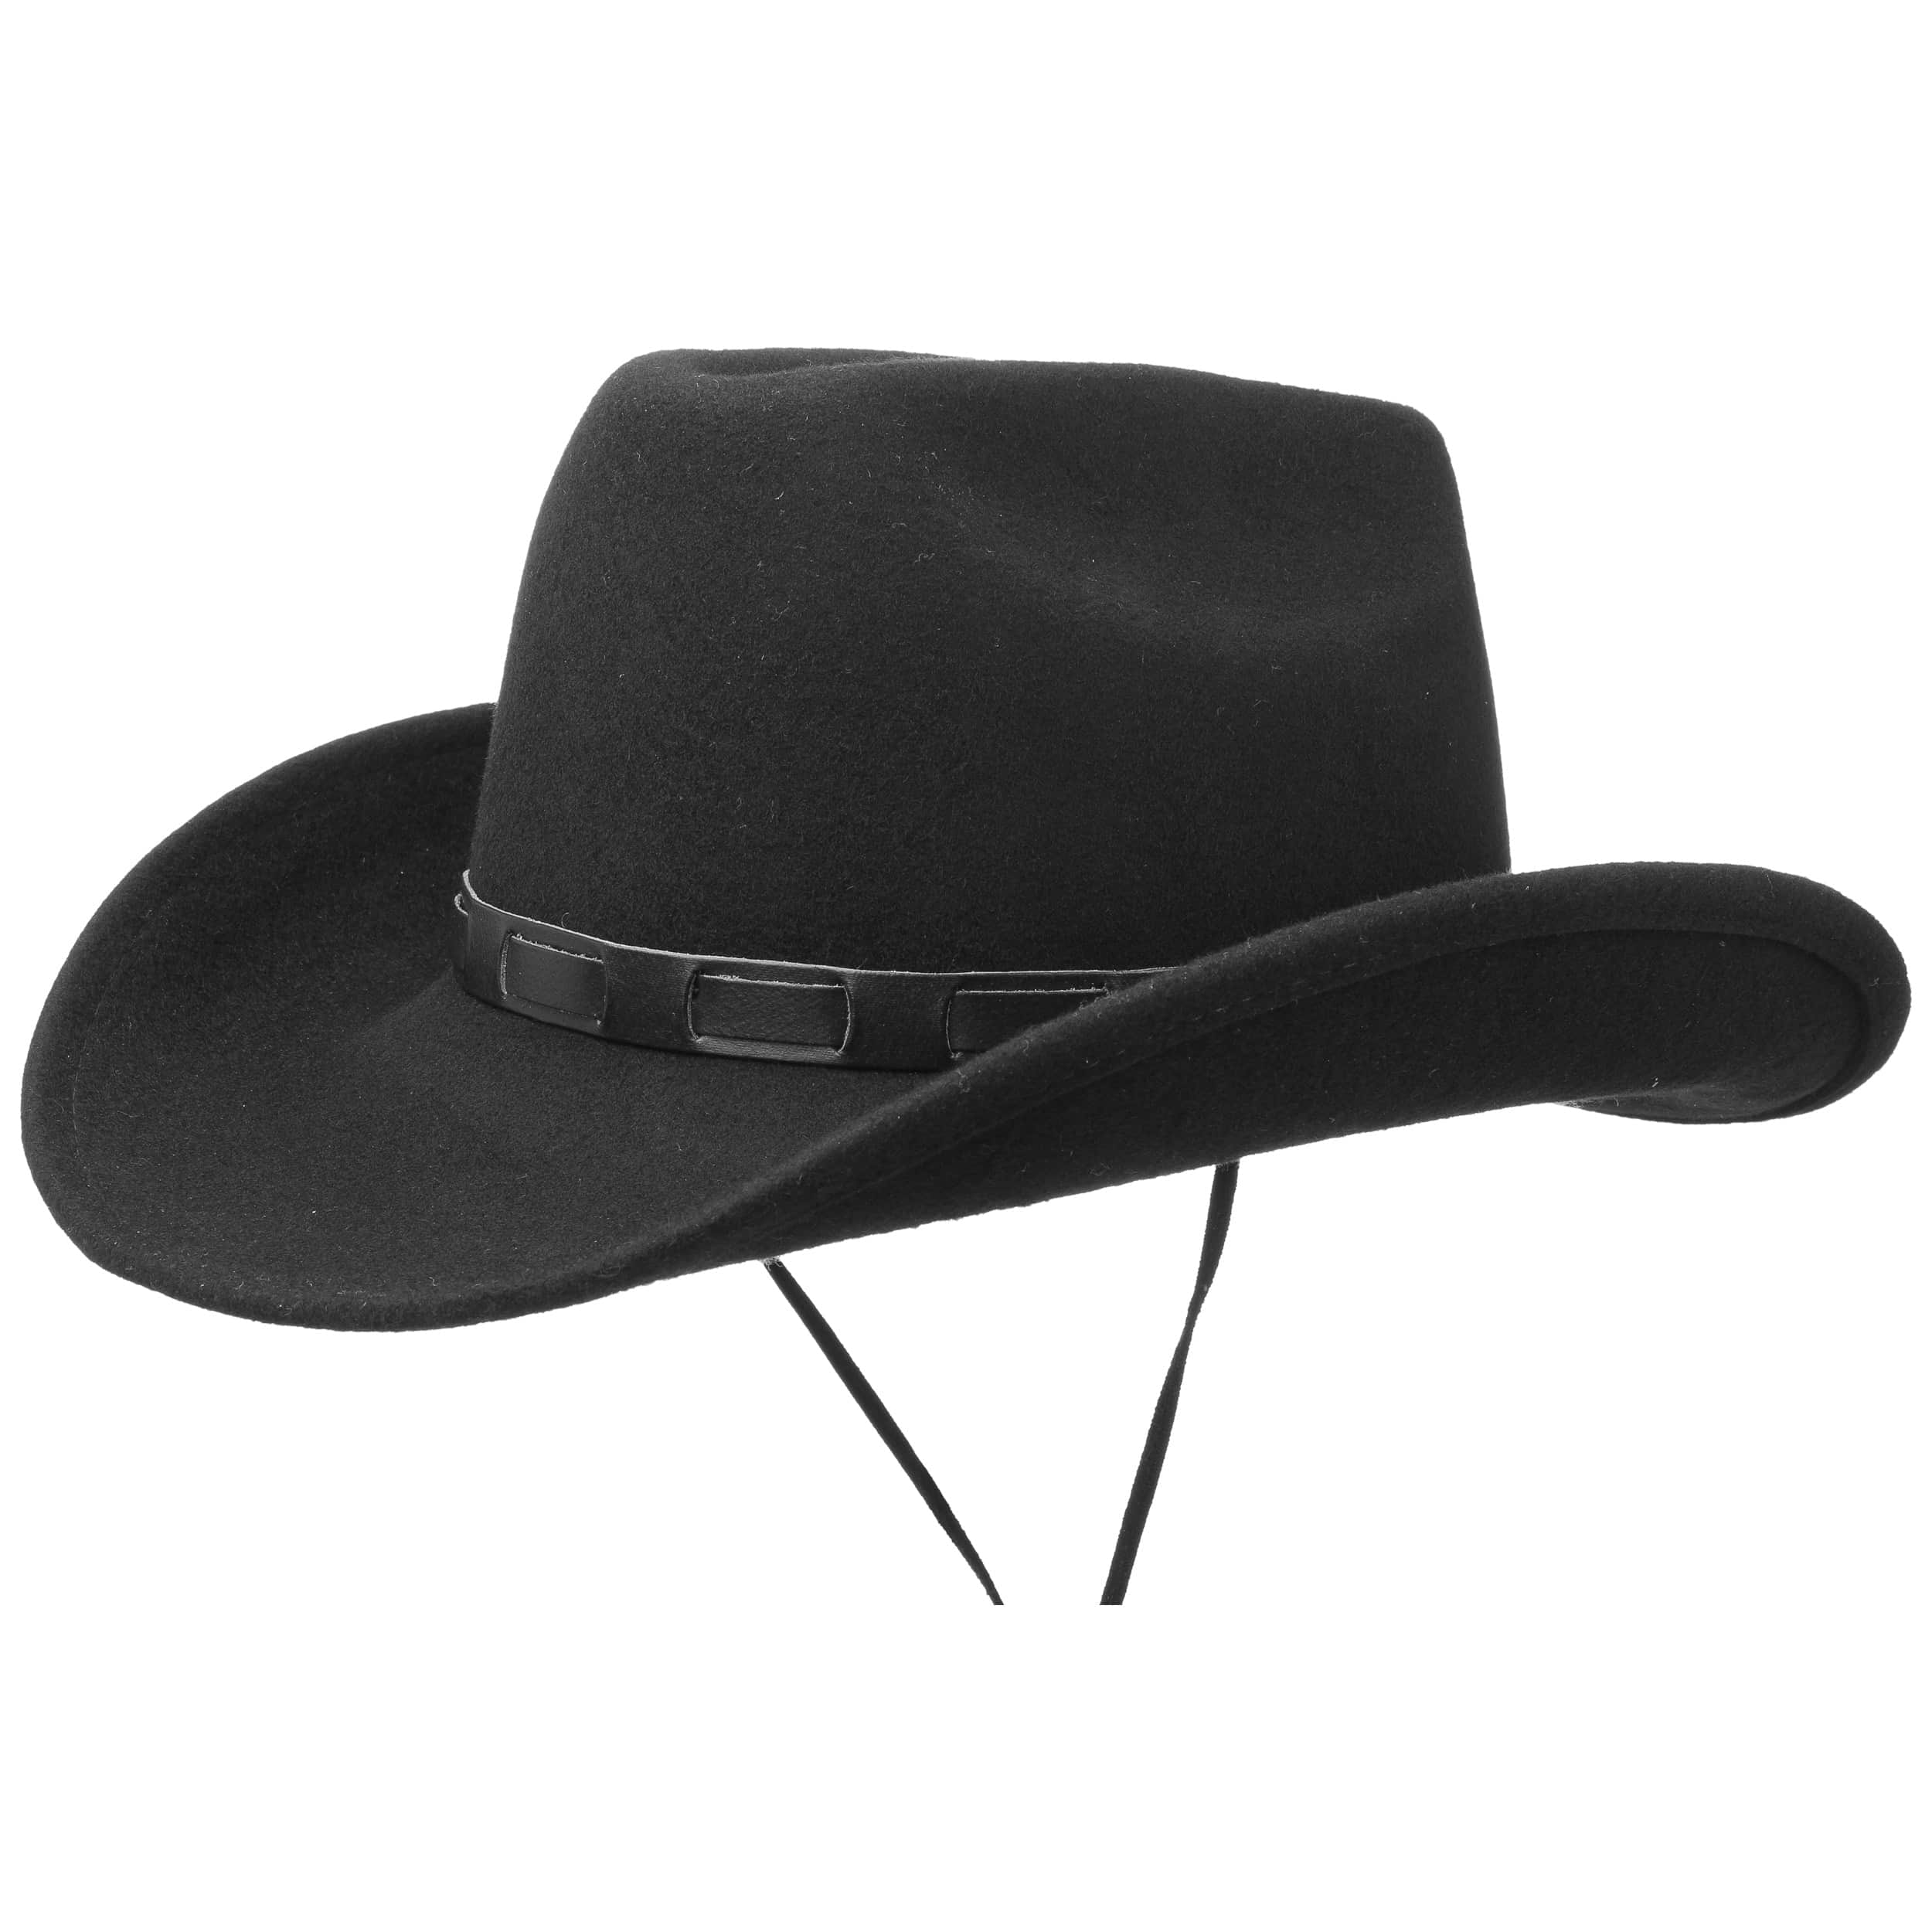 0ddee52e607 ... Bill Cody Western Hat with Chin Strap by Lipodo - black 4 ...